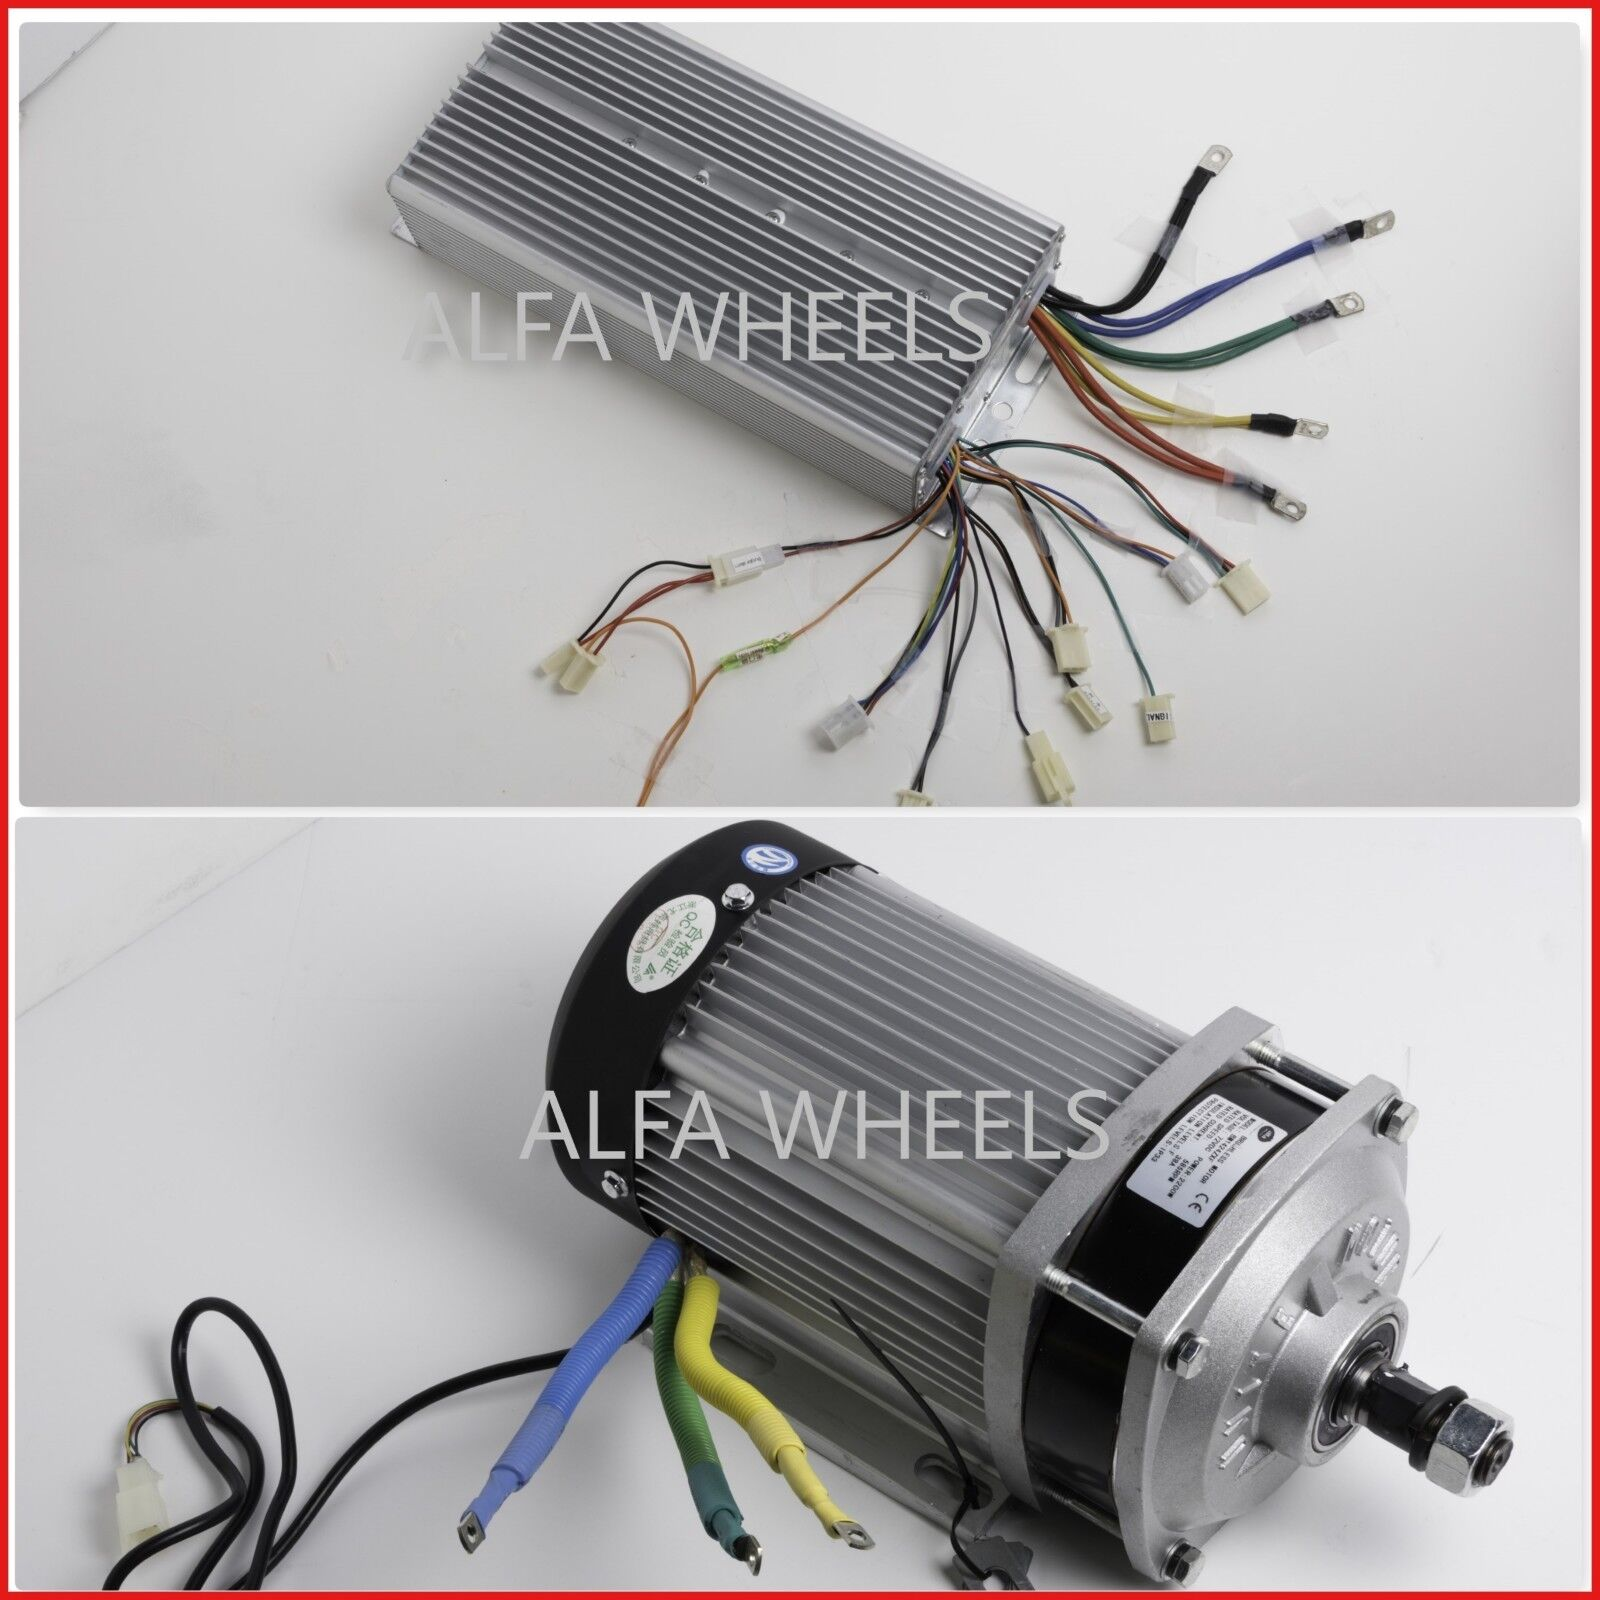 60 Volt 1500 Watt Electric GoKart Brushless Motor Gear 585-600 RPM w Controller